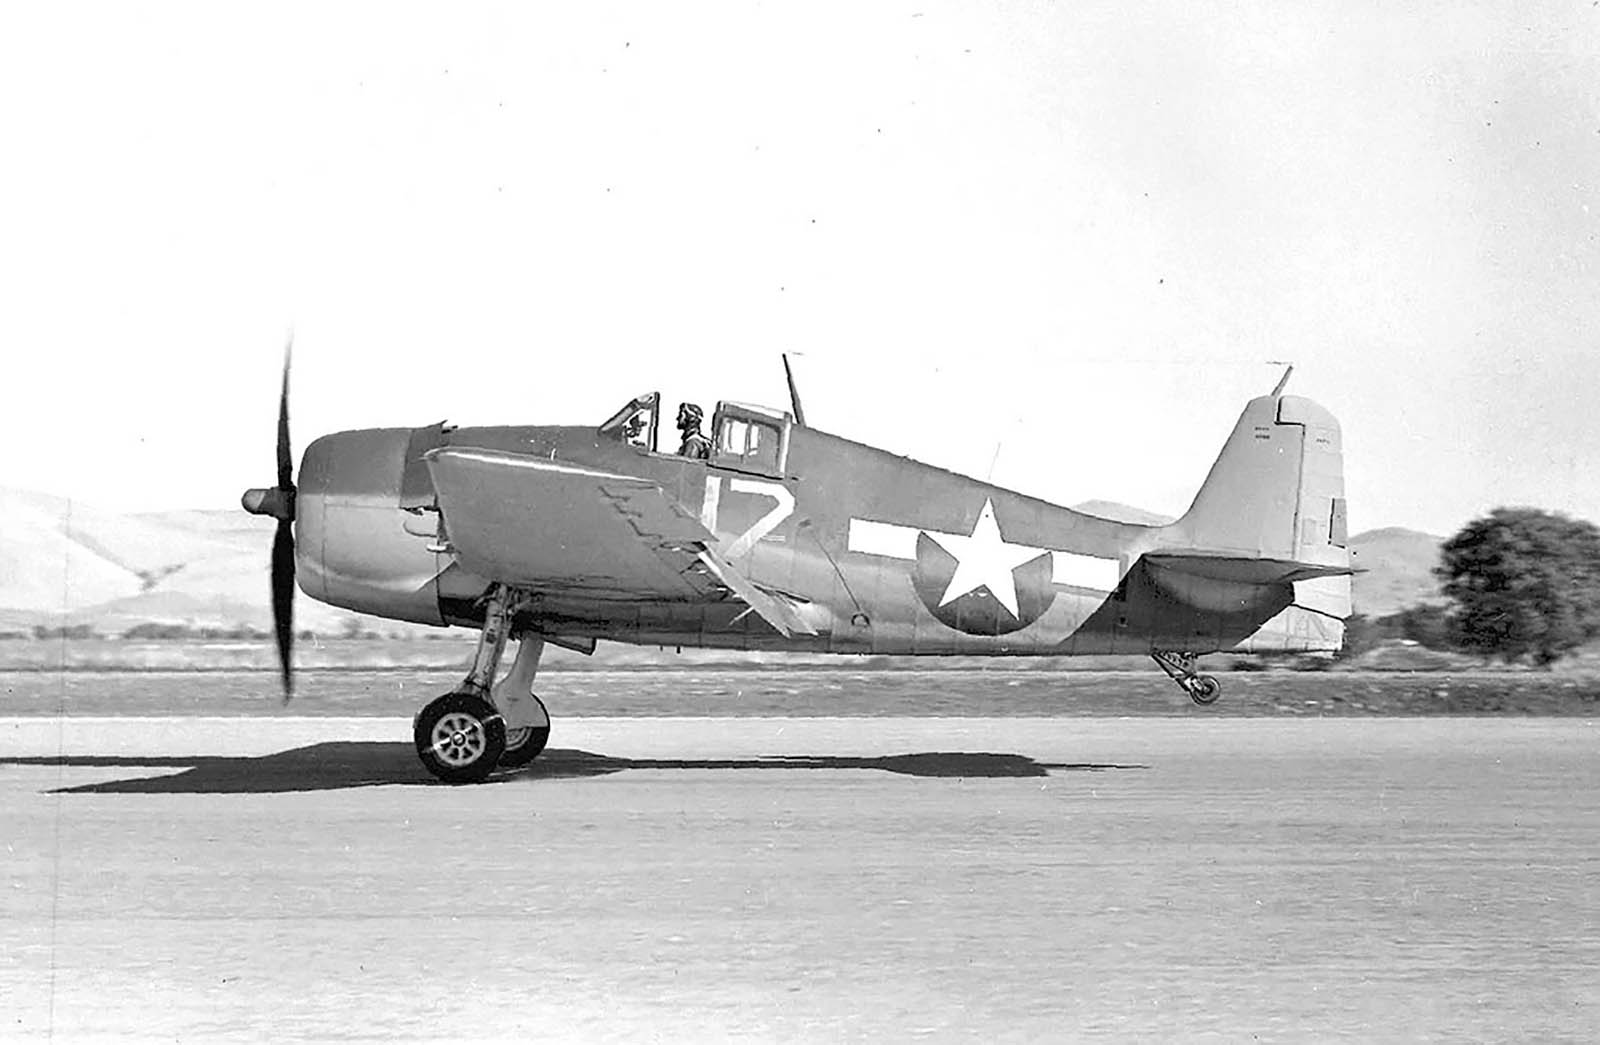 Grumman F6F 3 Hellcat NAS White 17 BuNo 40198 taking off from OLF Concord Oct 1943 01